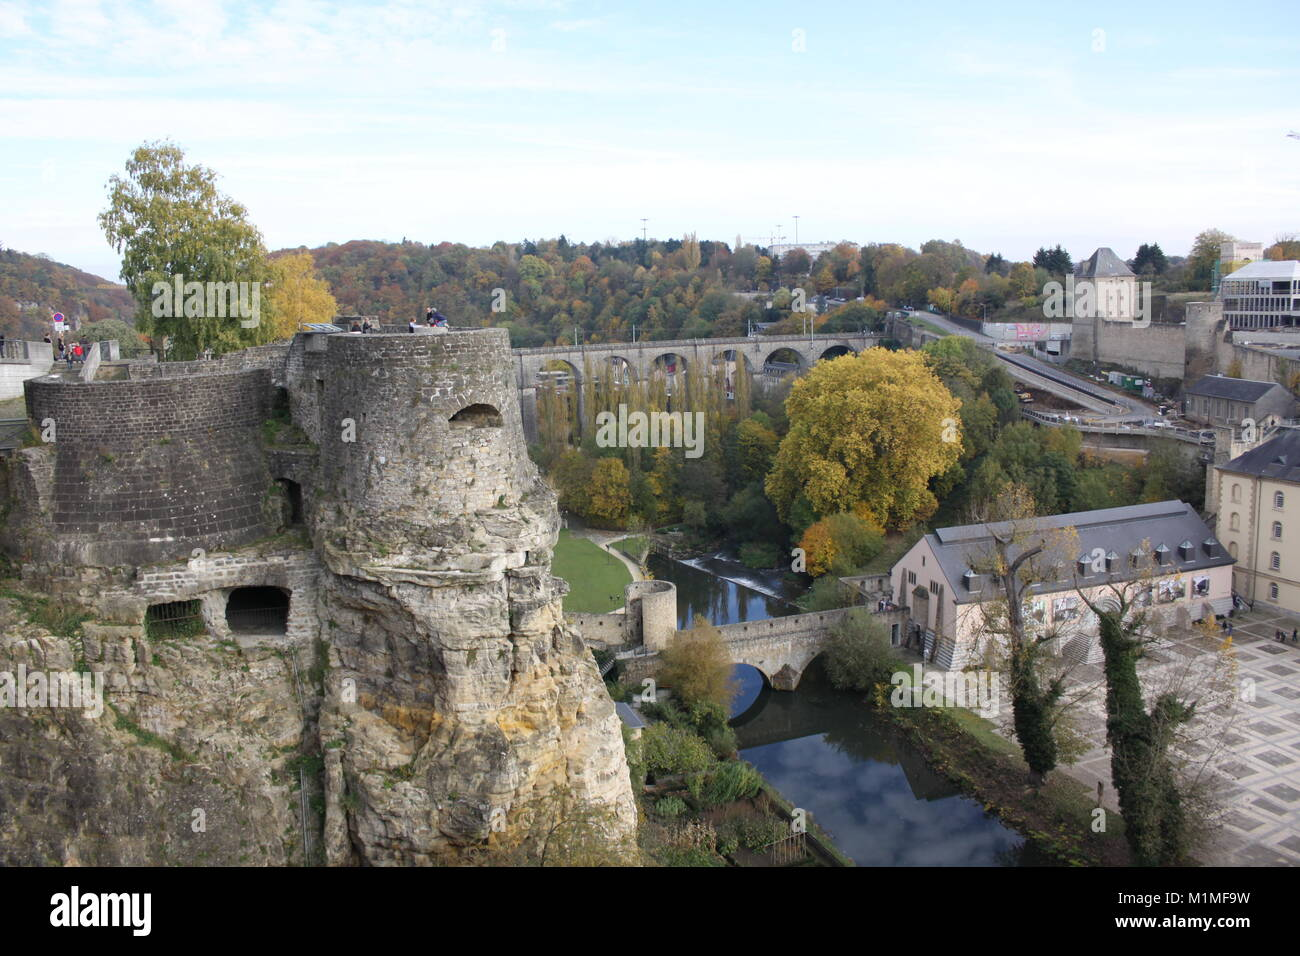 Grand Duchy of Luxembourg, Fortress, casemates, Malcolm Buckland - Stock Image